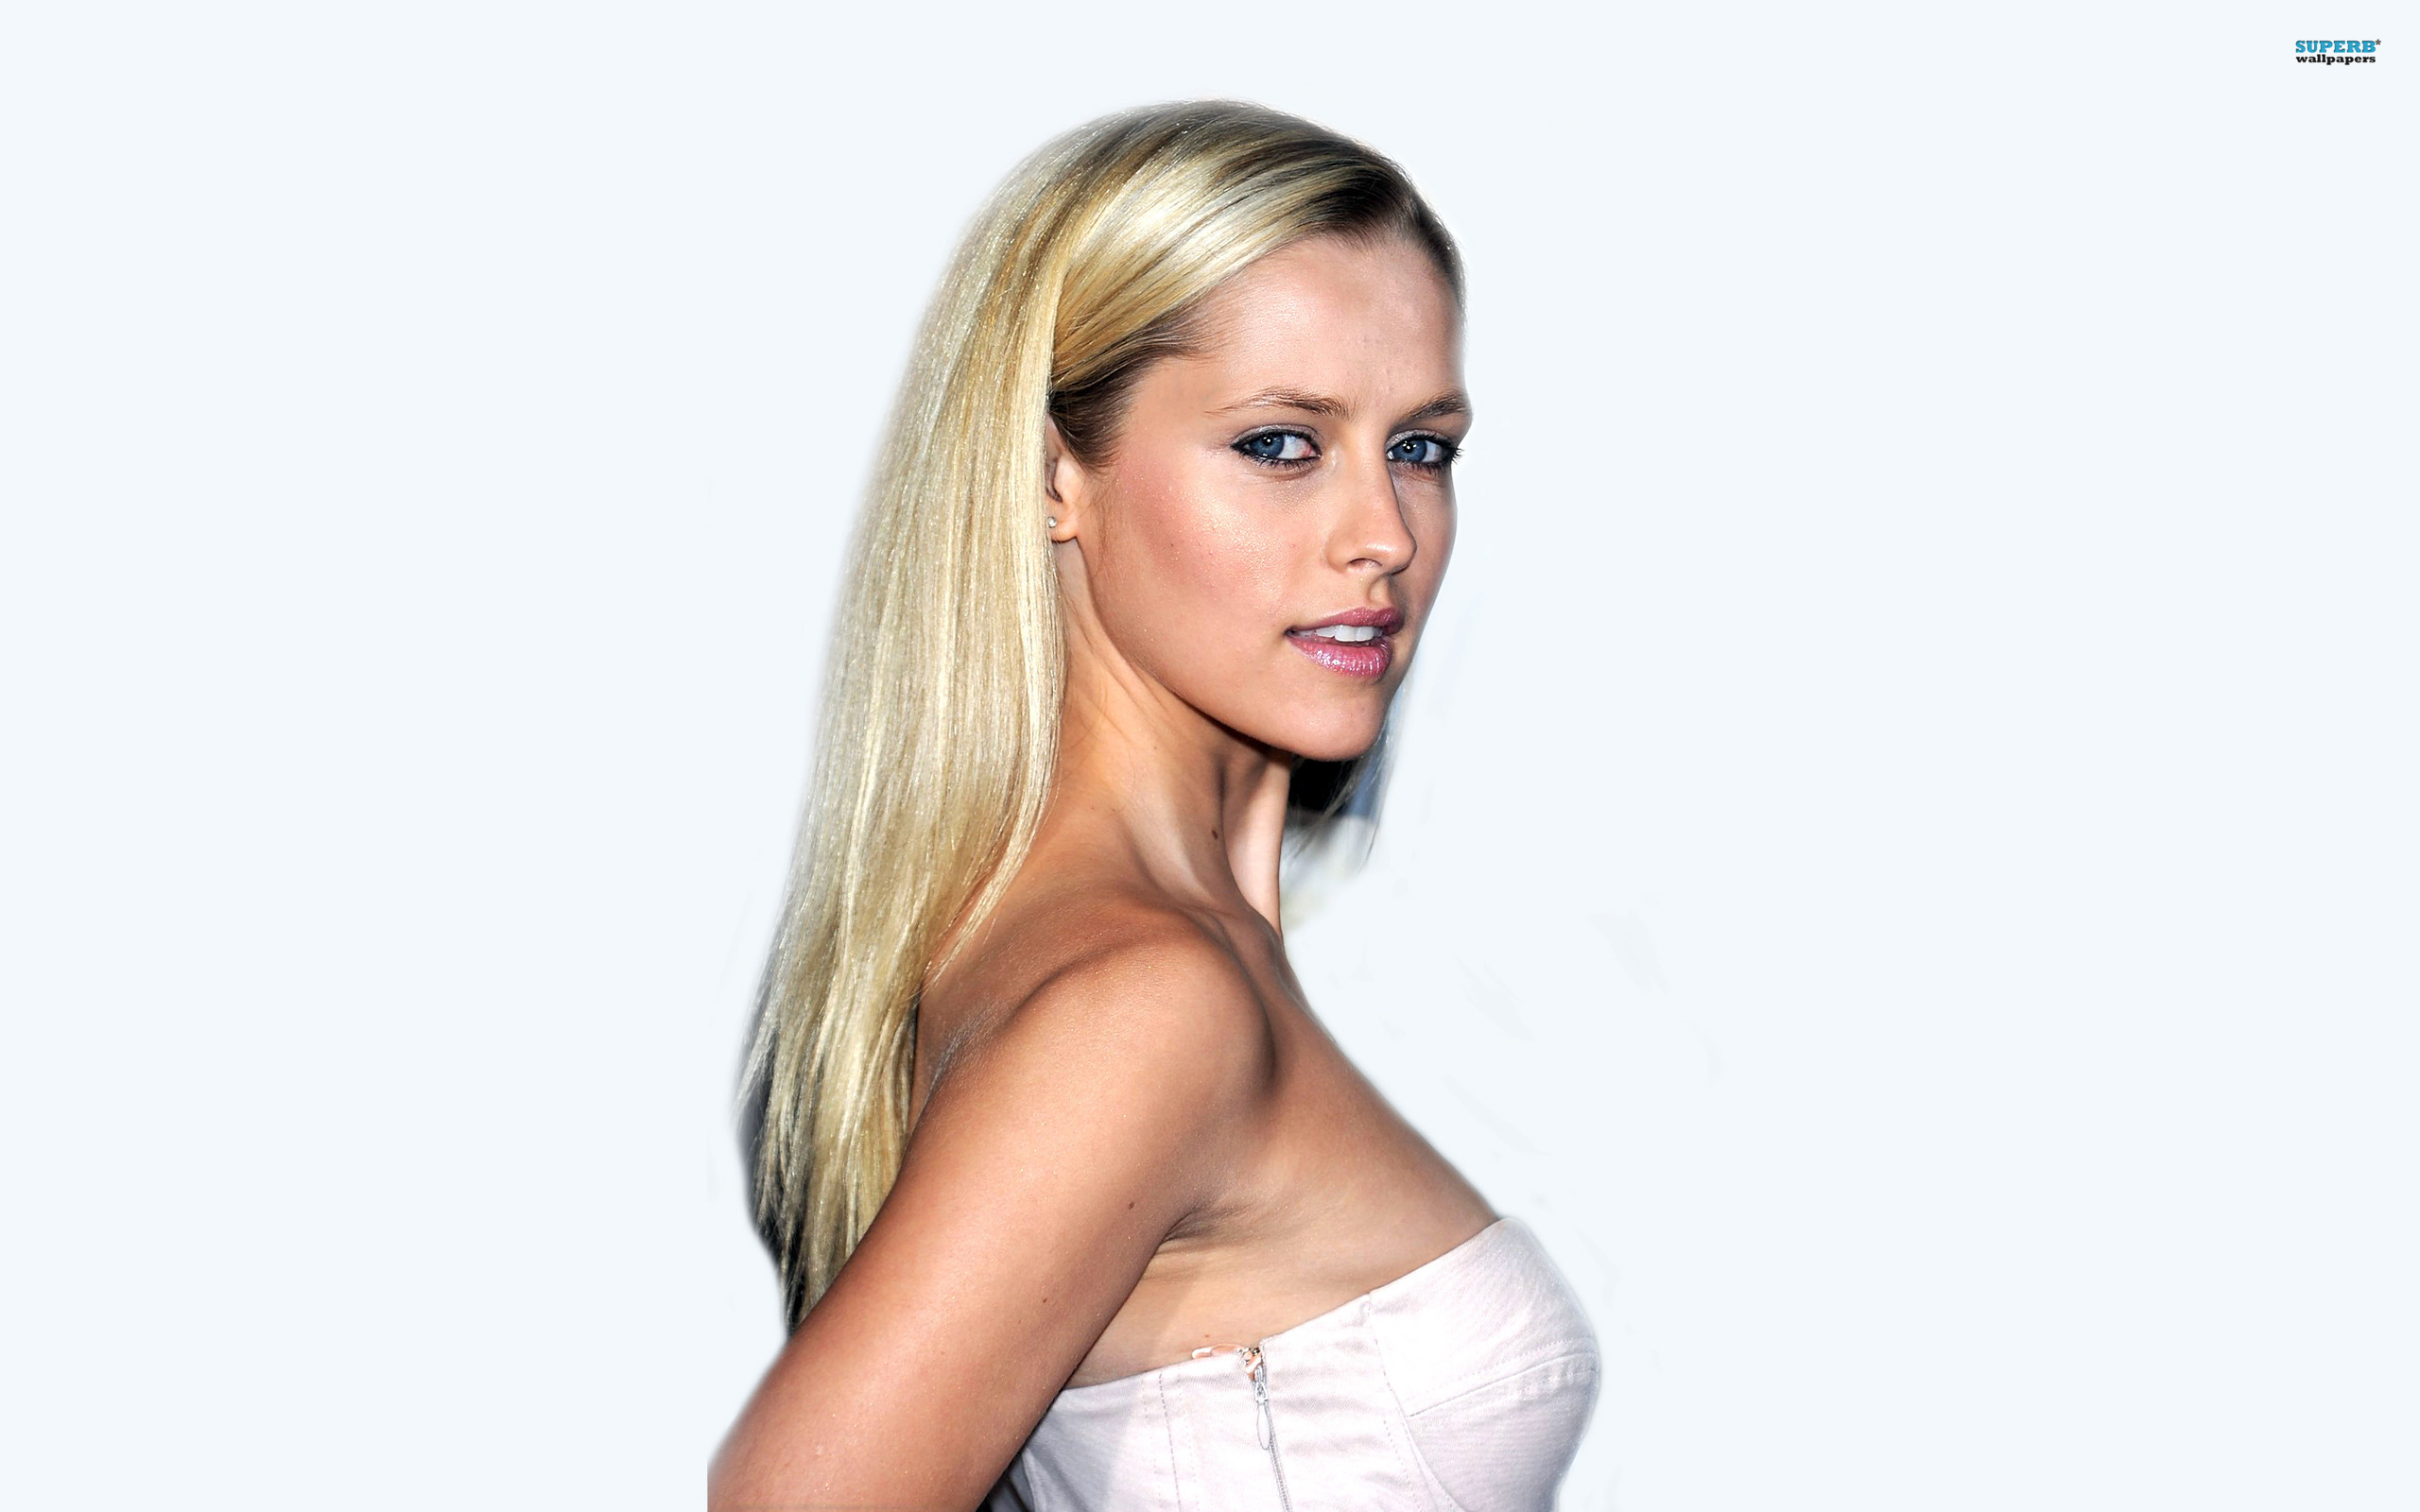 Teresa Palmer Wallpapers High Resolution And Quality Download